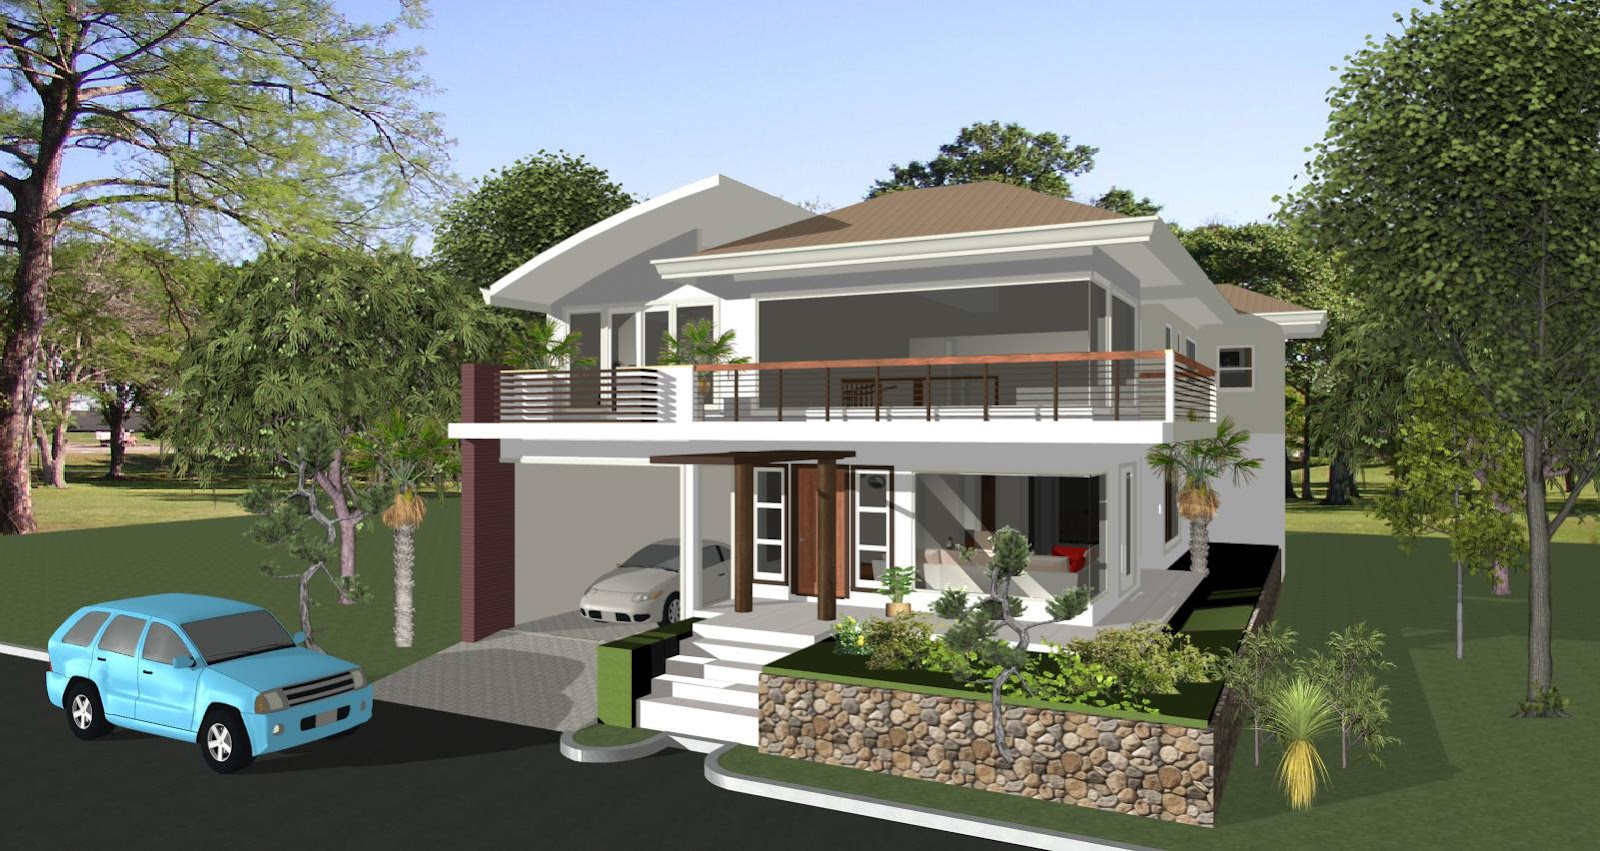 House designs philippines architect bill house plans for Architects house plans